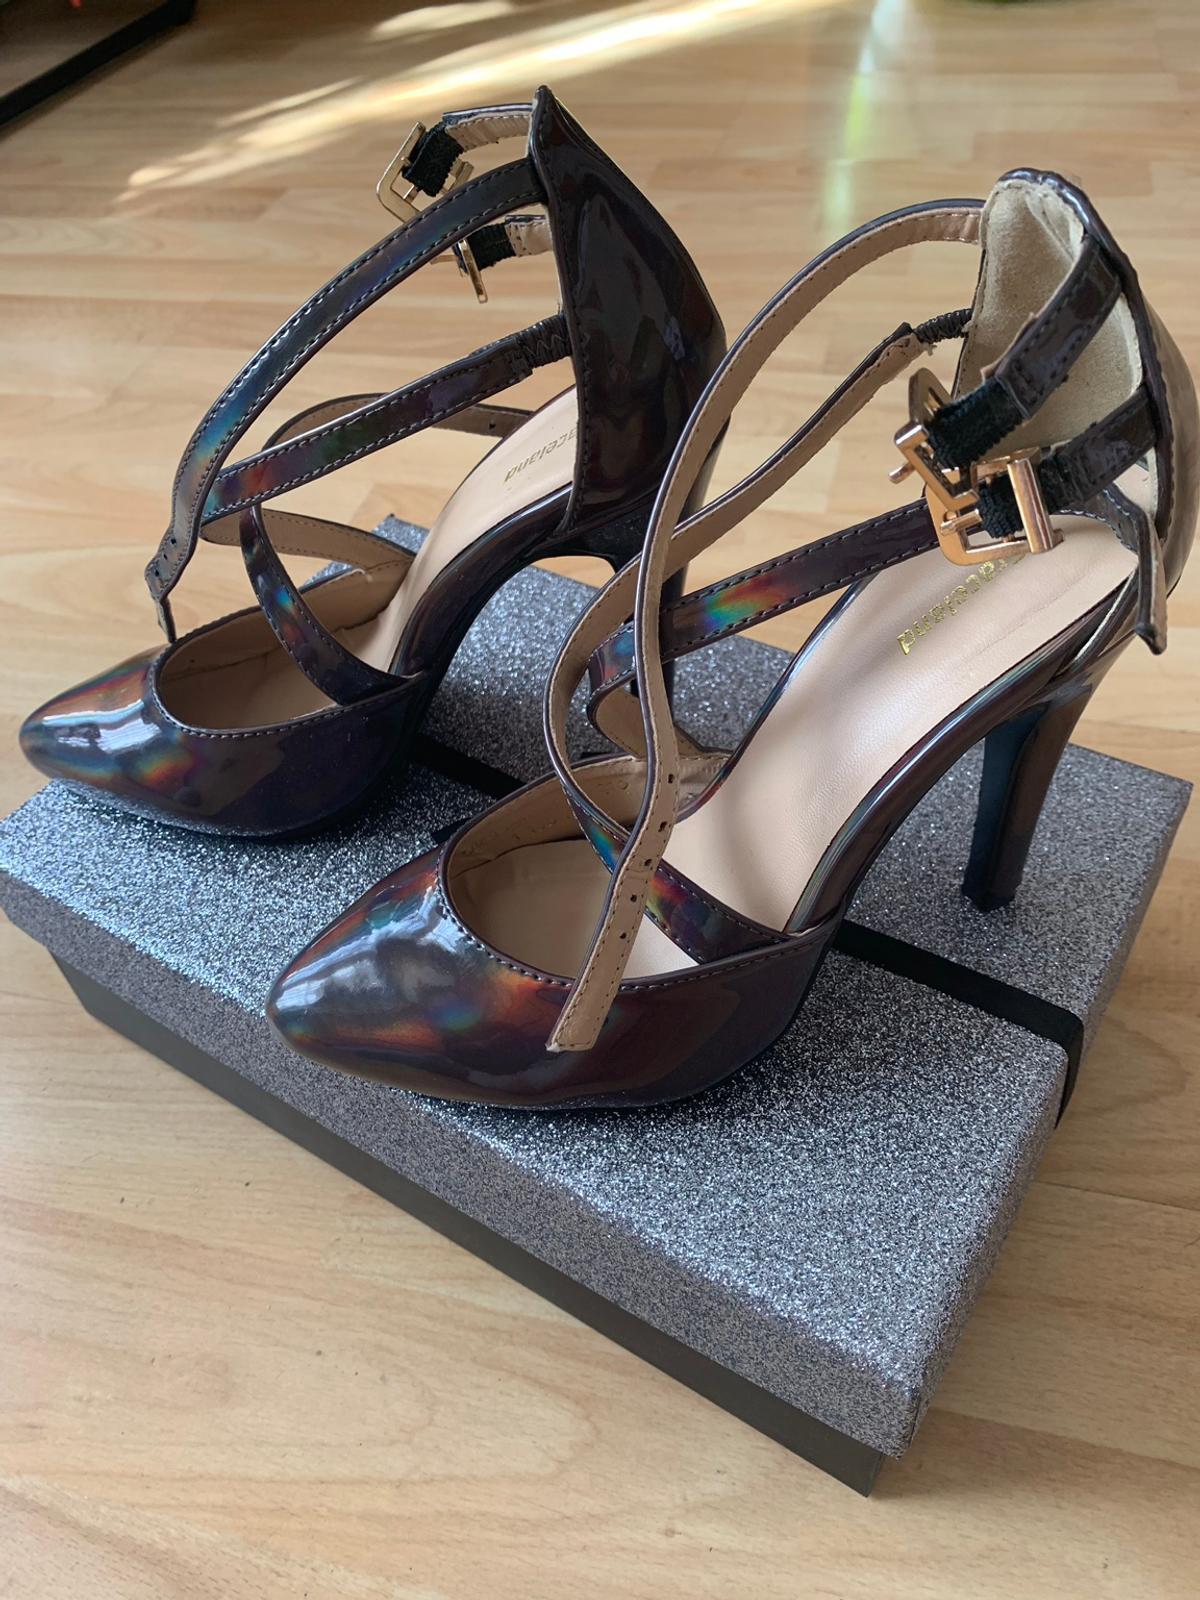 Size 3 shoes high heels